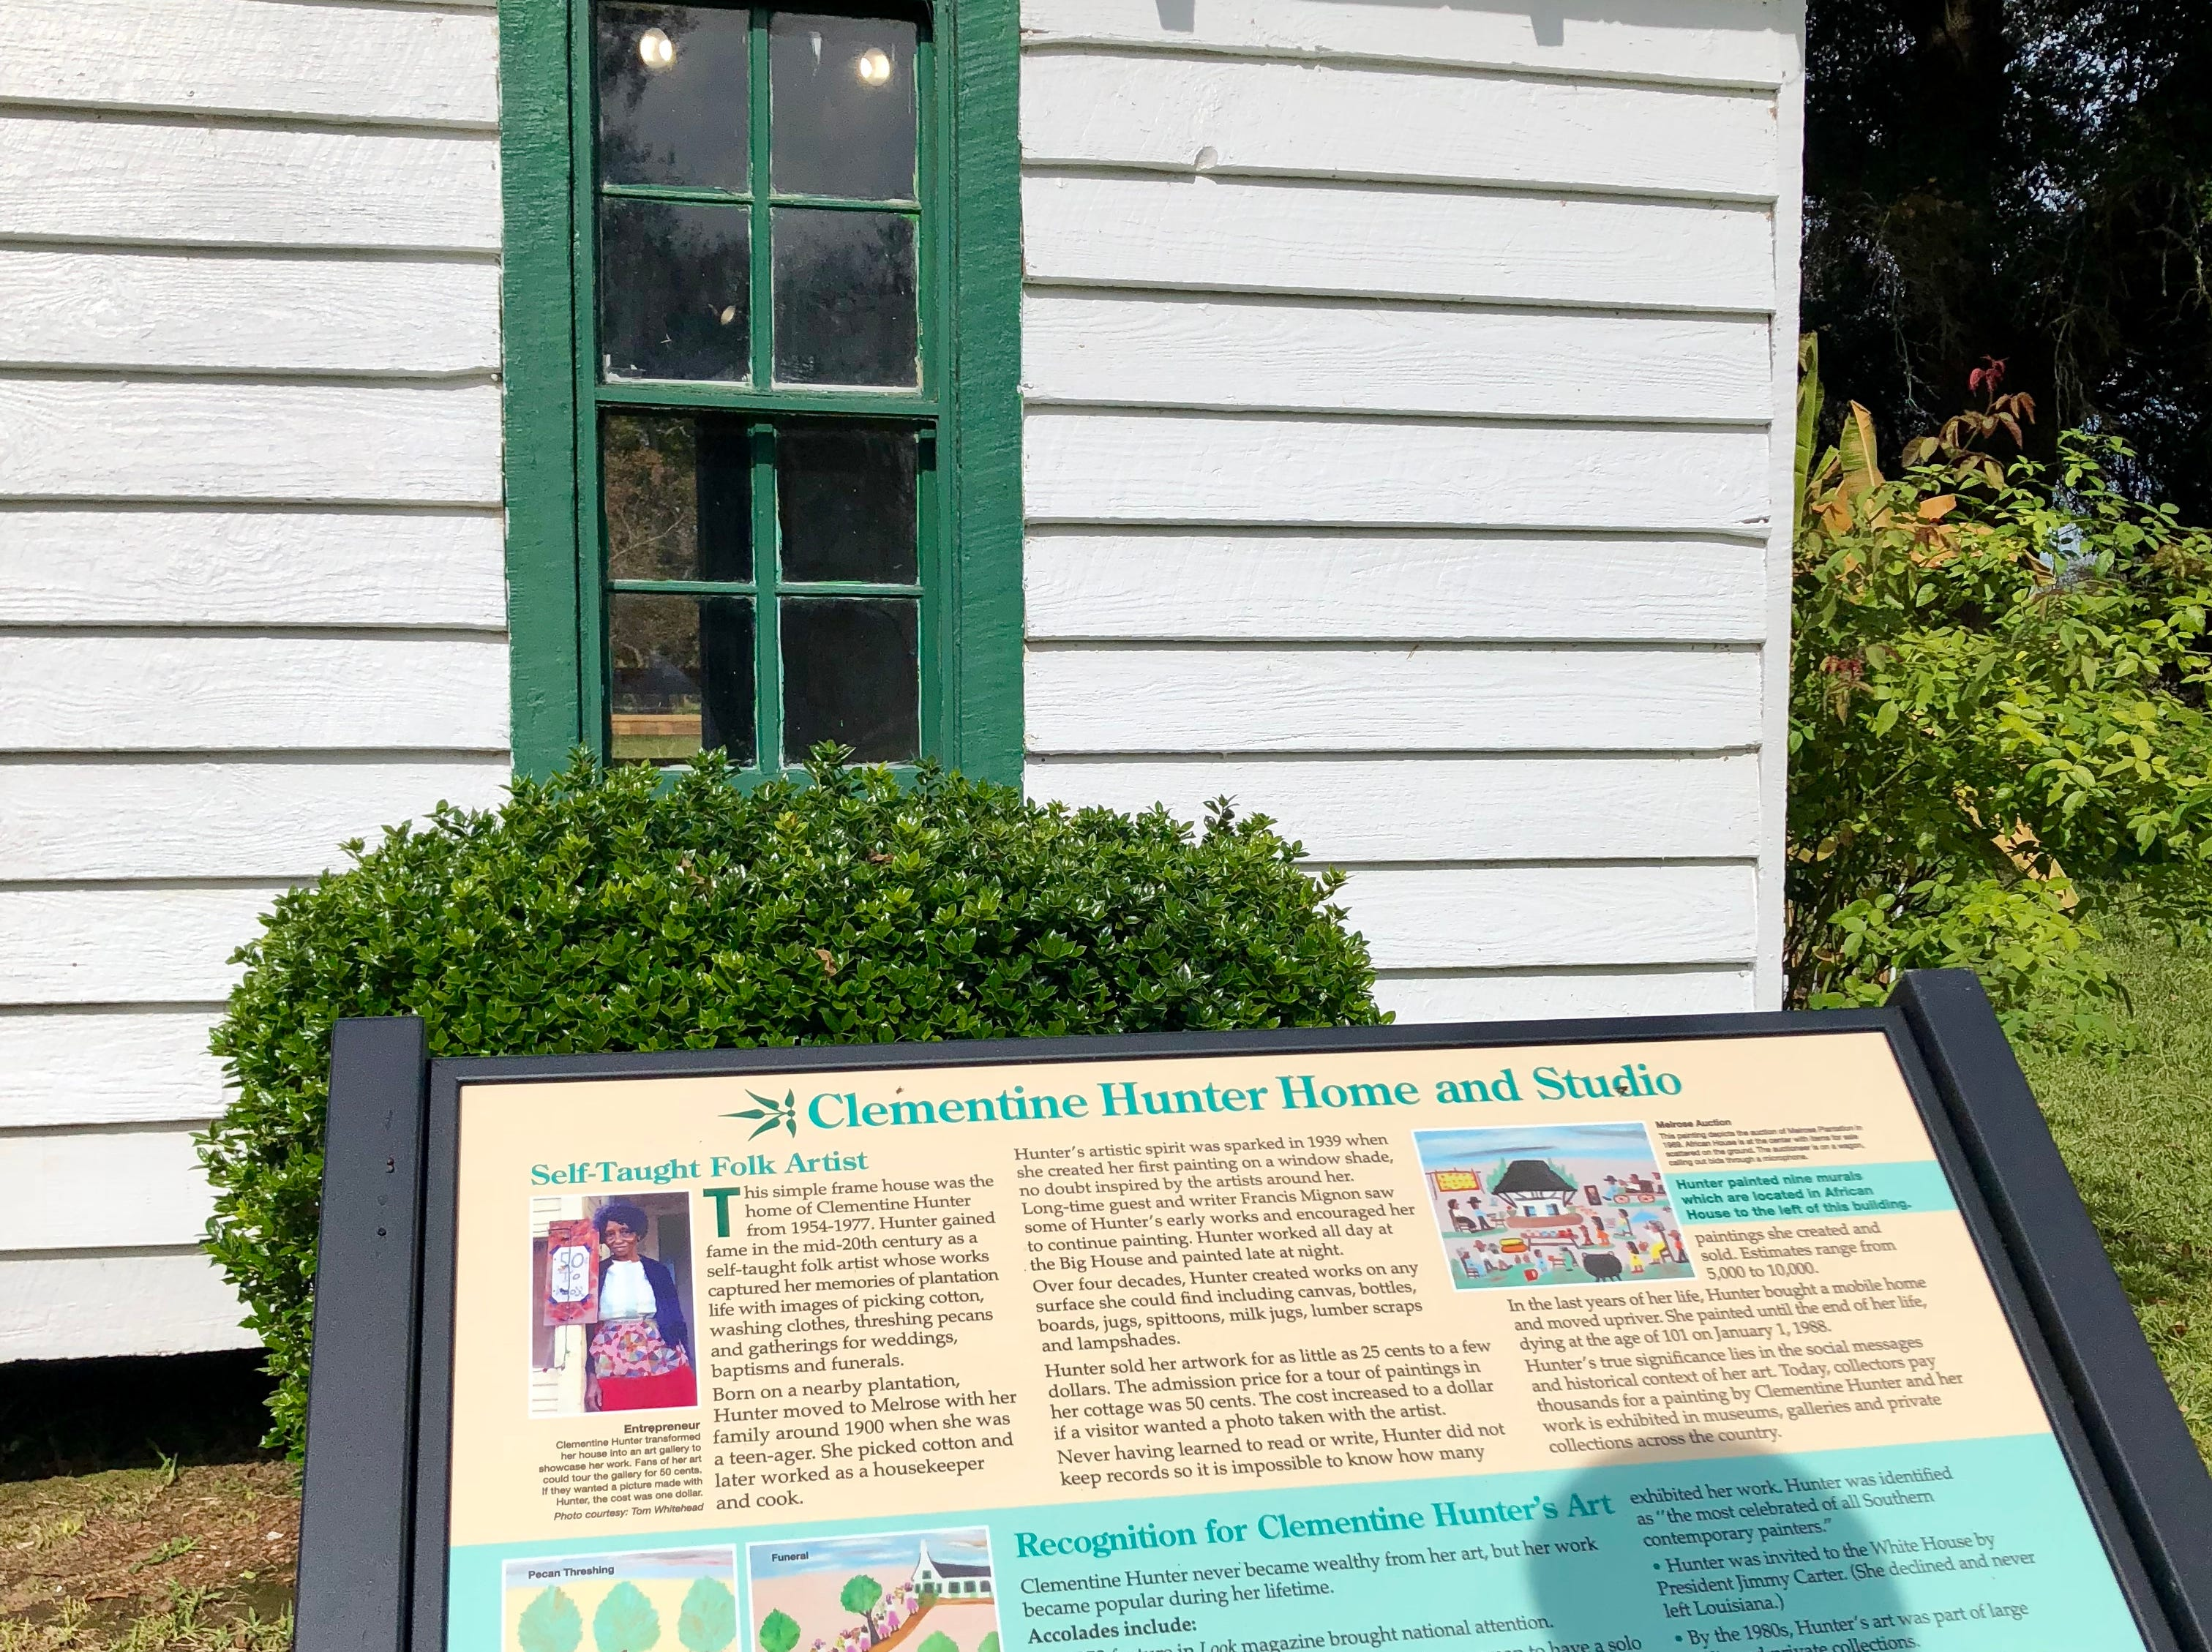 Famous Louisiana folk artist Clementine Hunter's home is on the grounds of Melrose Plantation, as is some of her artwork.